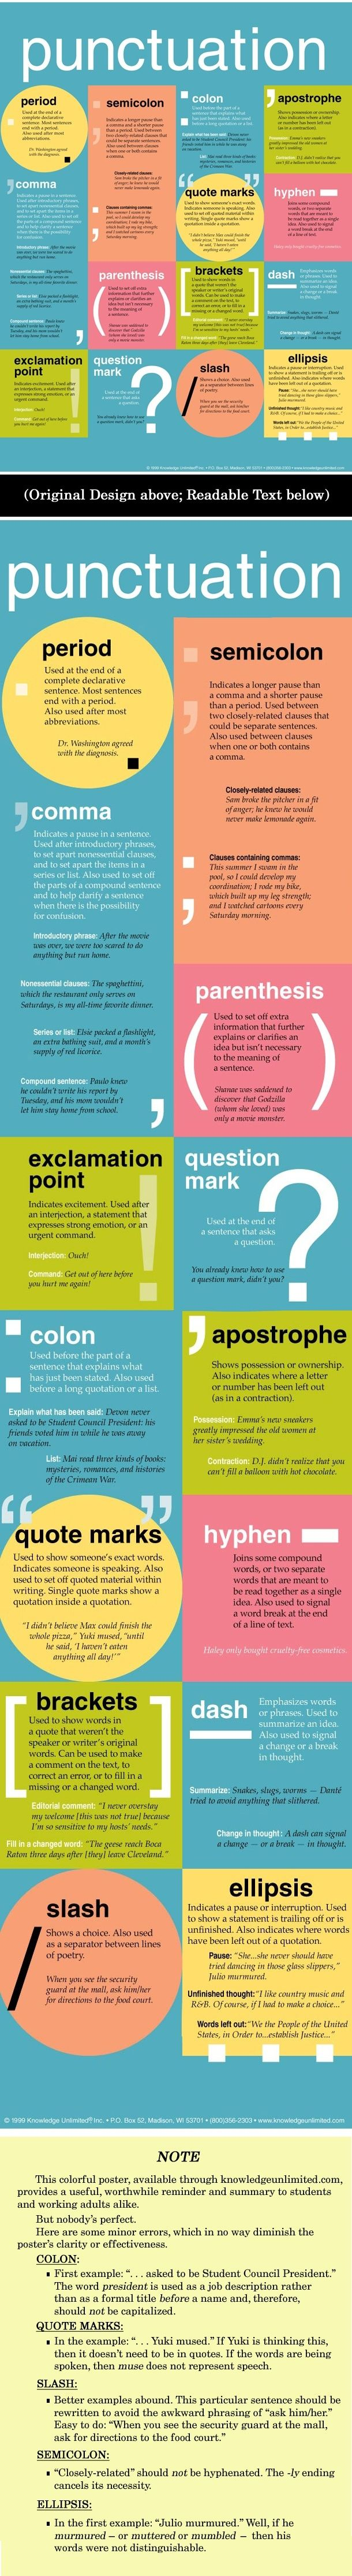 best ideas about essay title page title page a review of the basics is always beneficial this poster created by the folks